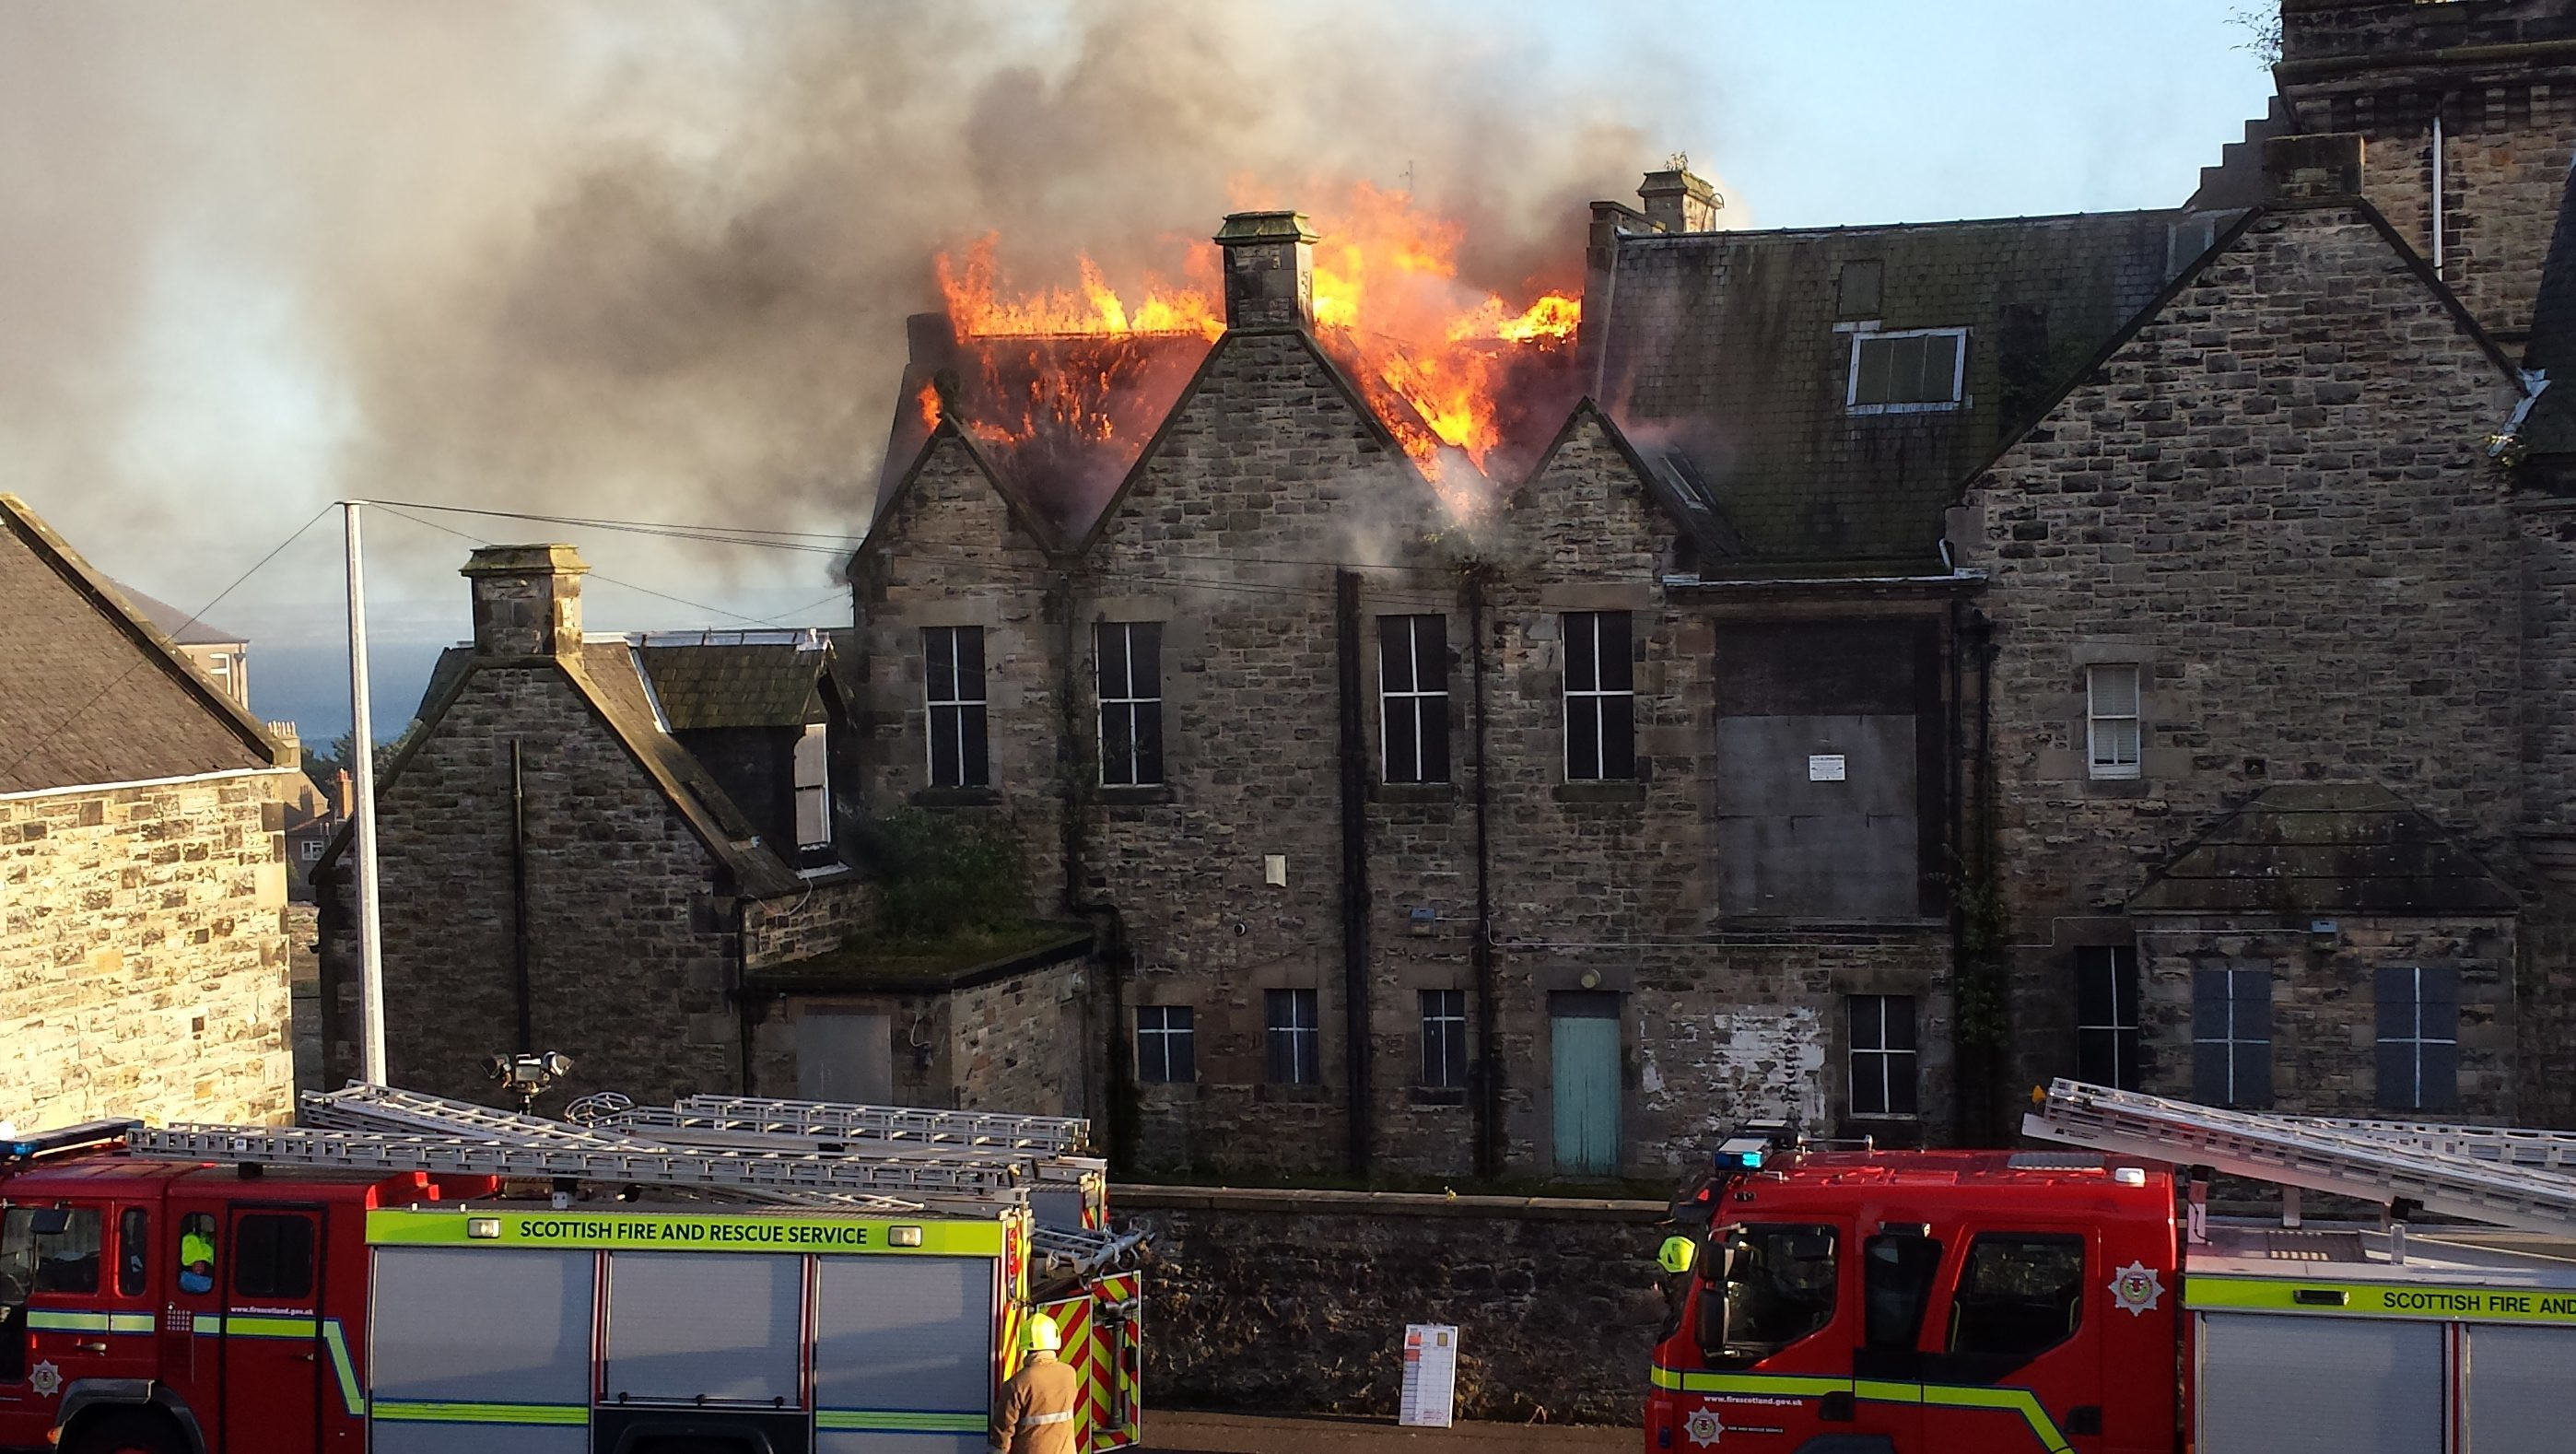 Firefighters tackling the blaze.